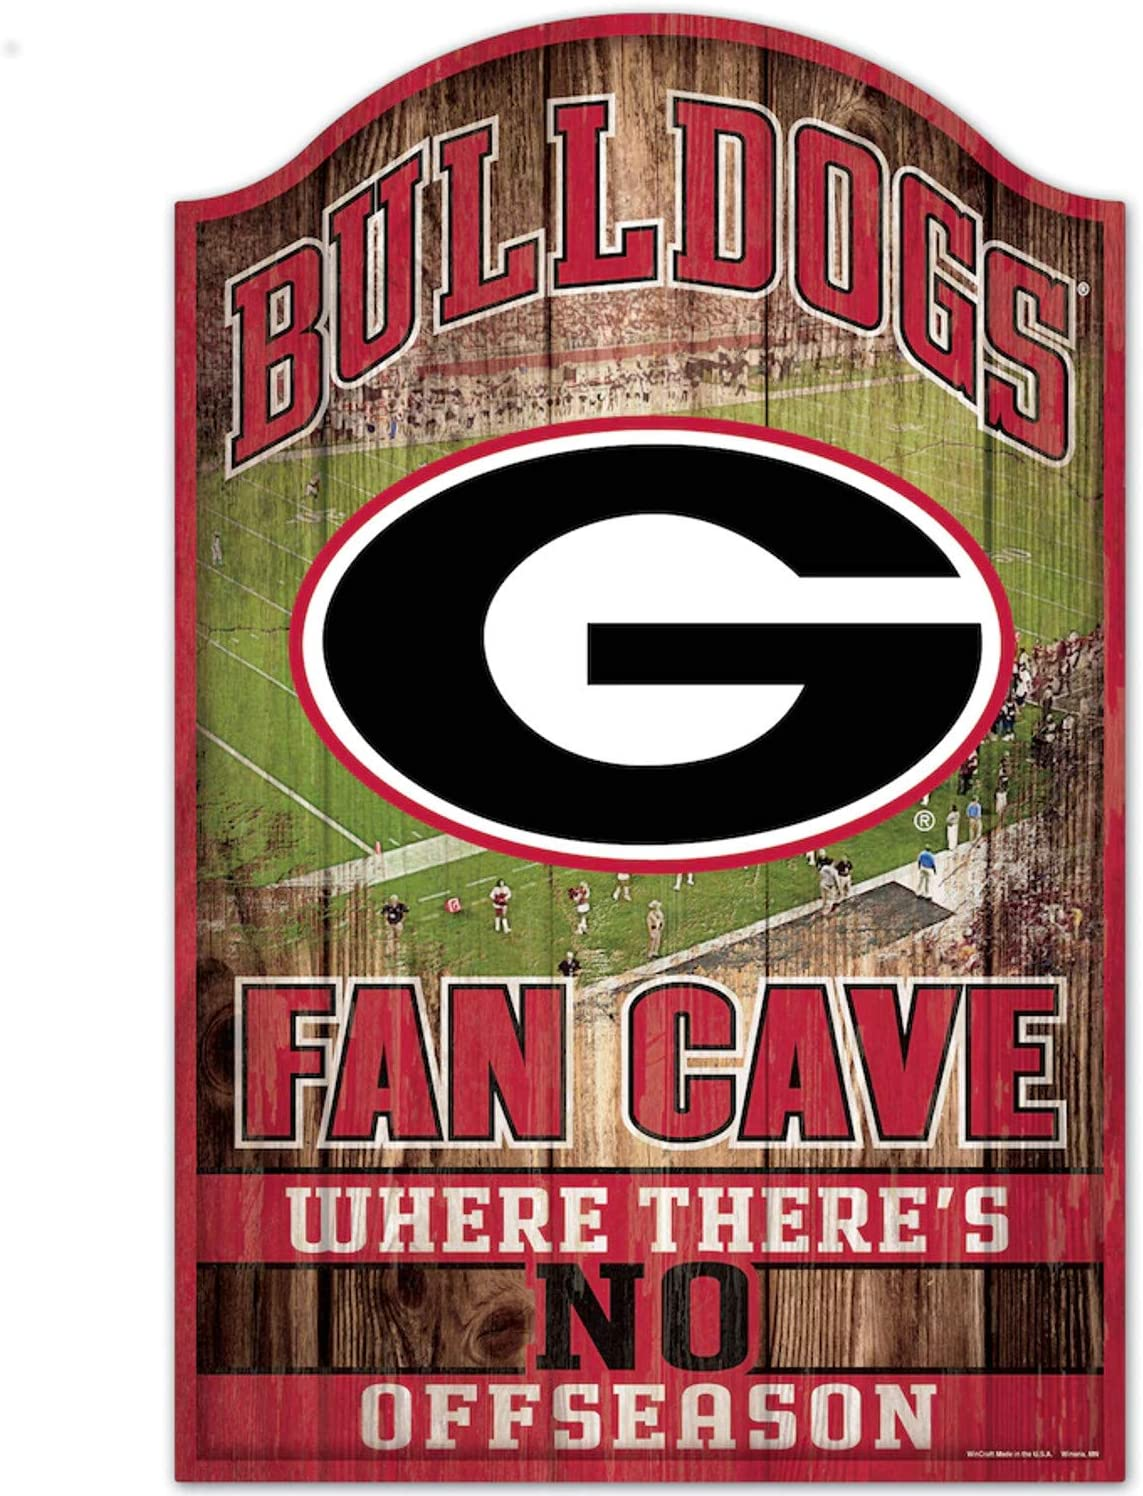 Wincraft Collegiate Fan Shop Authentic NCAA Fan Cave Wooden Sign. Stake Your Territory with This Sign. for The Office or Man Cave. This 11